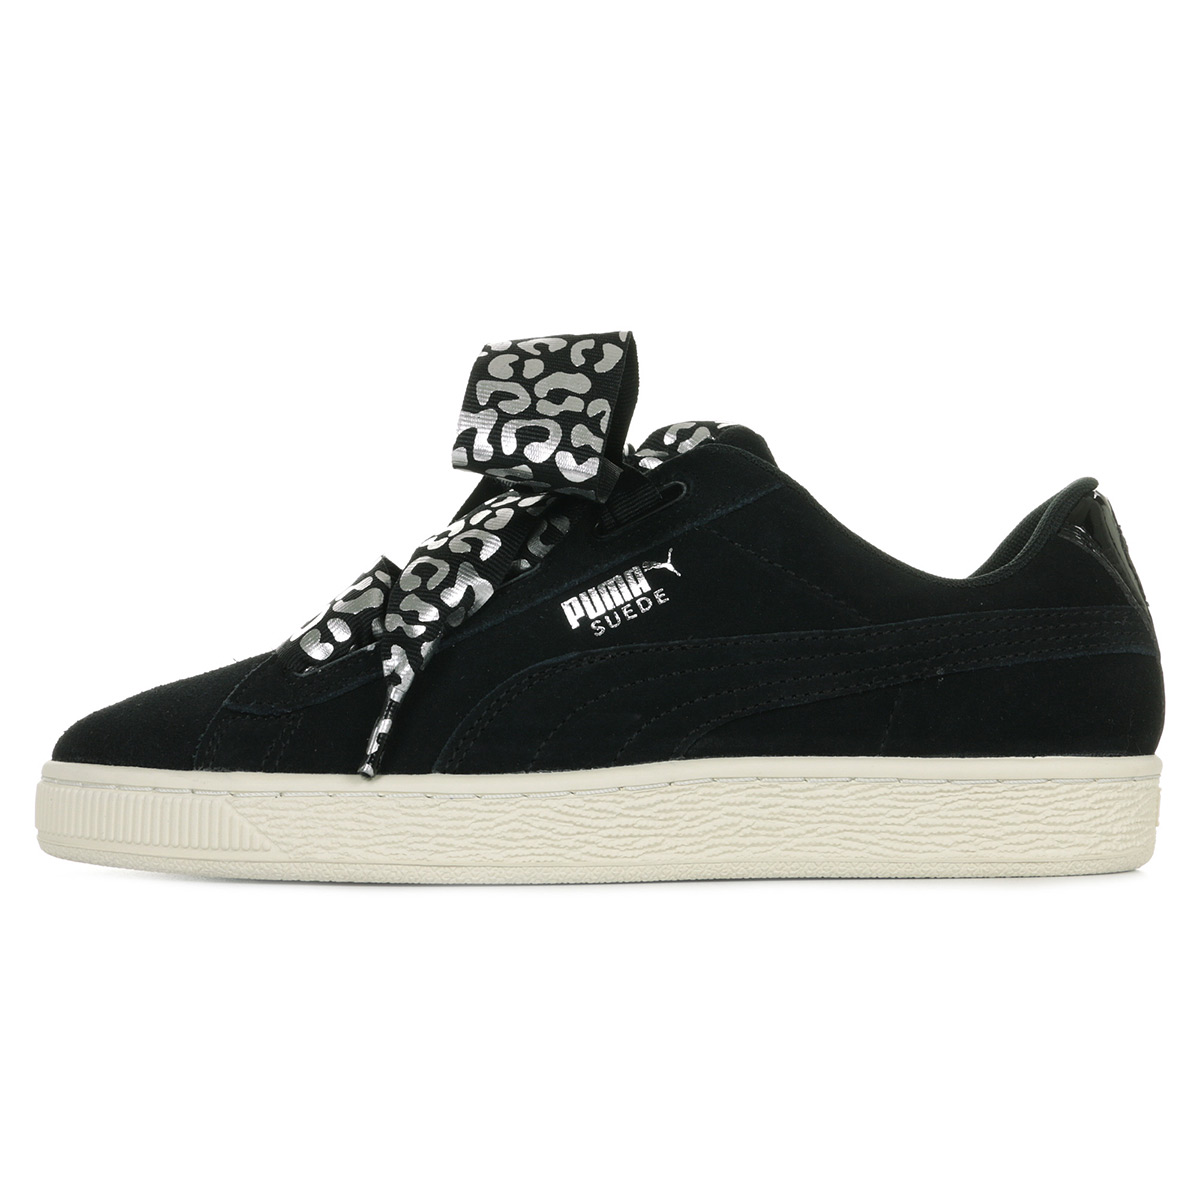 621c4d41d78 Puma Suede Heart AthLuxe PS 36684501